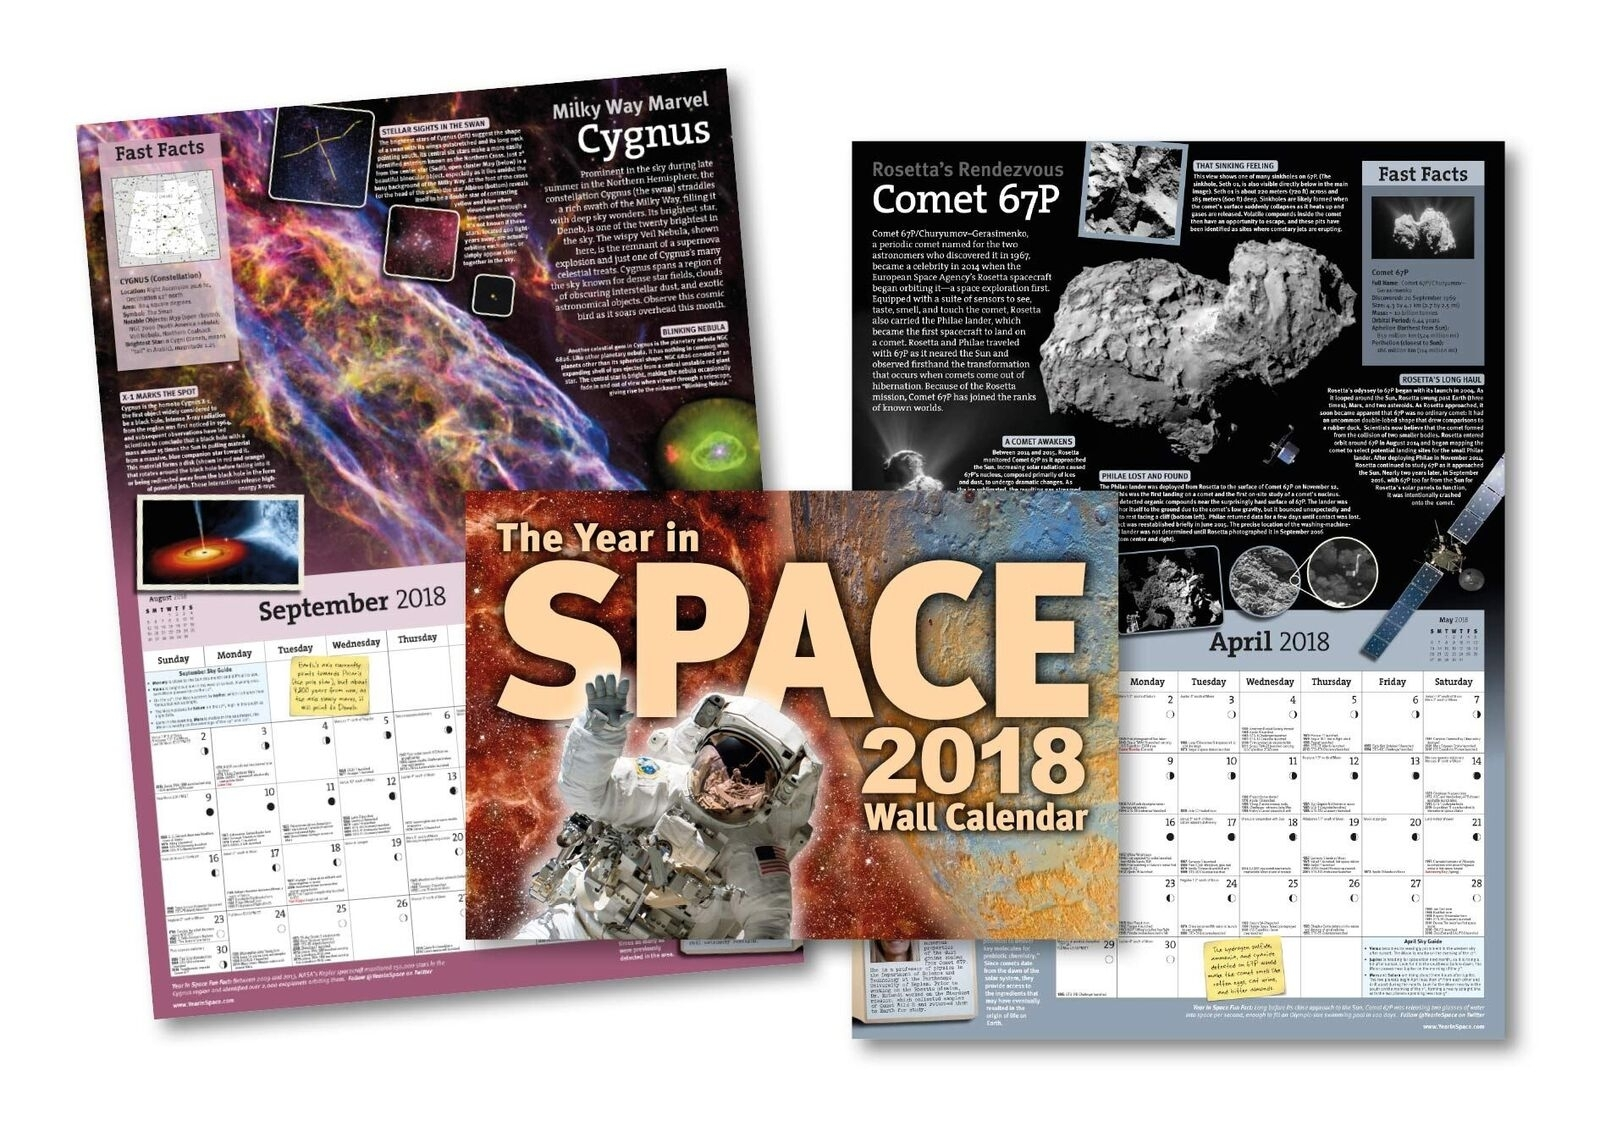 What Is The Perfect Gift For Every Space Enthusiast? The Year In